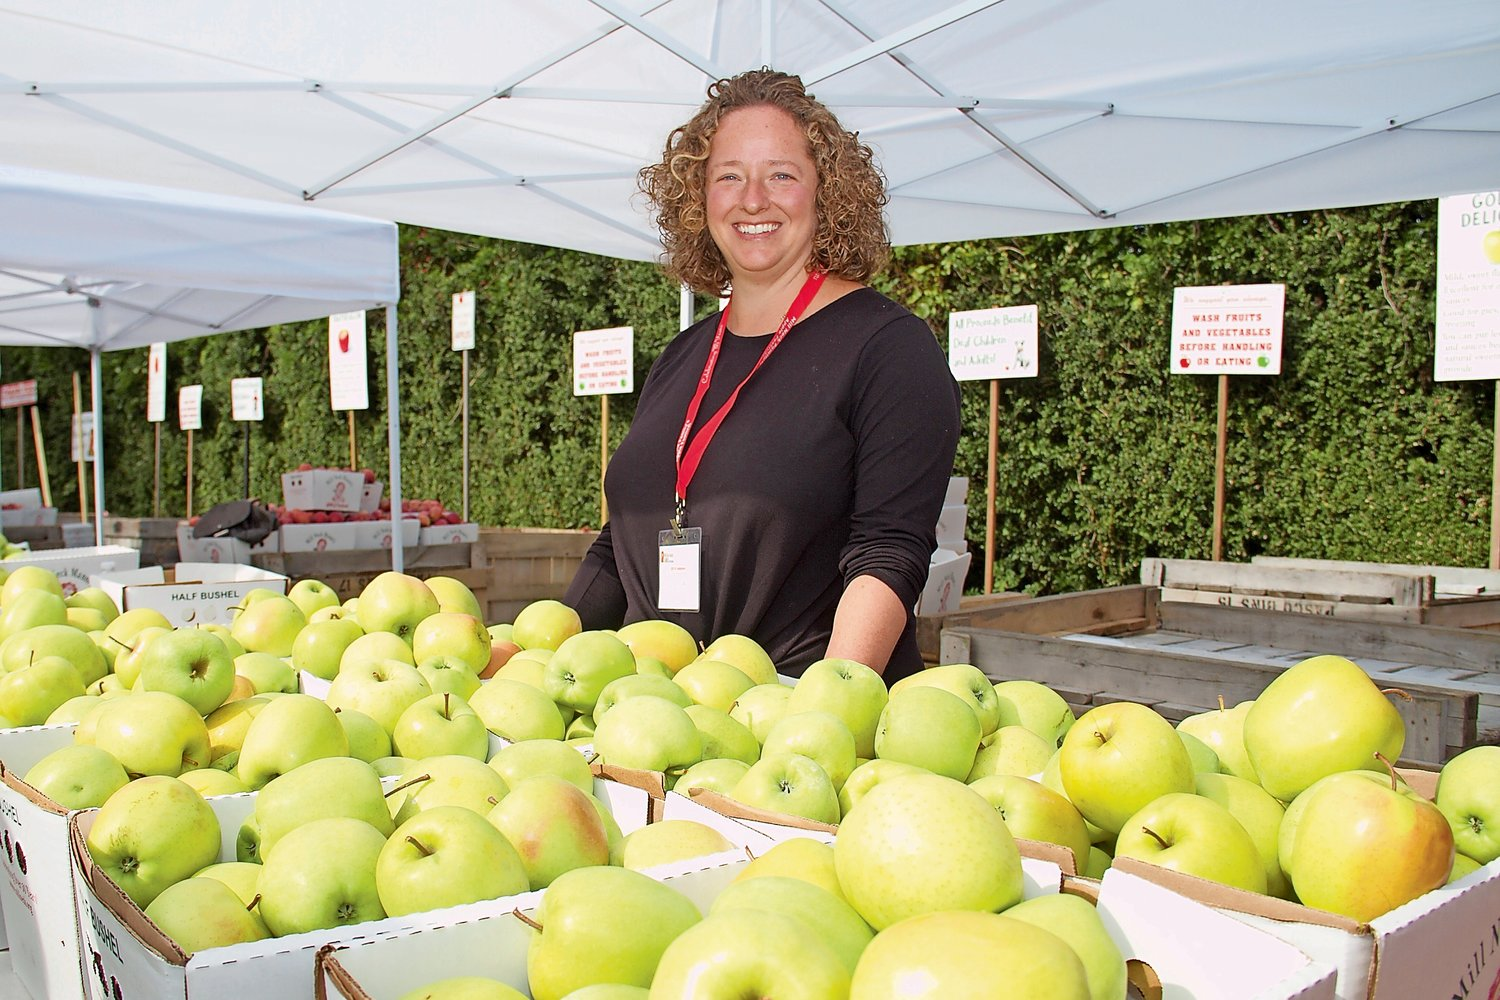 Jillian Terrana volunteered under the Golden Delicious apple tent at the Apple Festival.